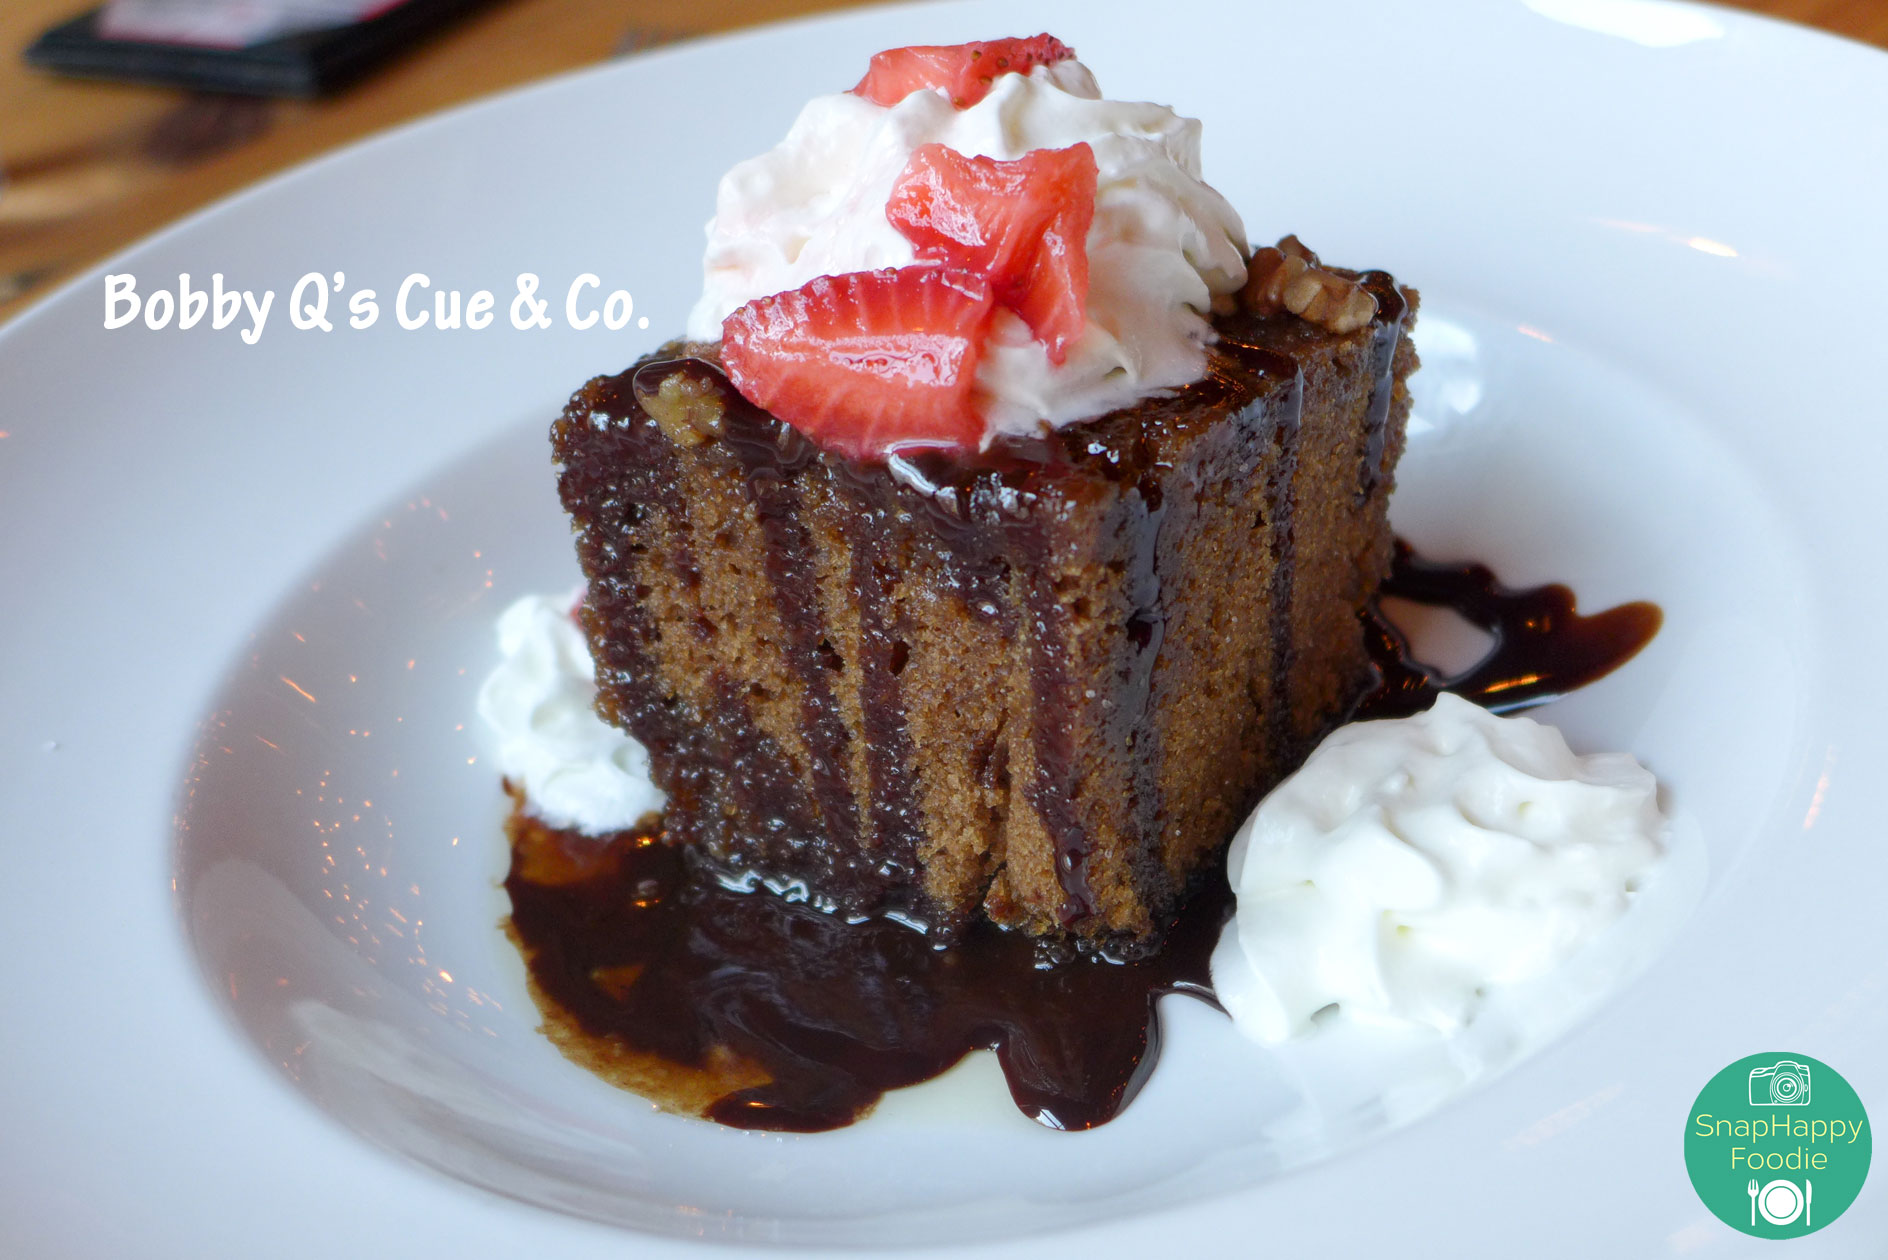 Southern Chocolate Cola Cake from Bobby Q's Cue & Co. South Norwalk, CT